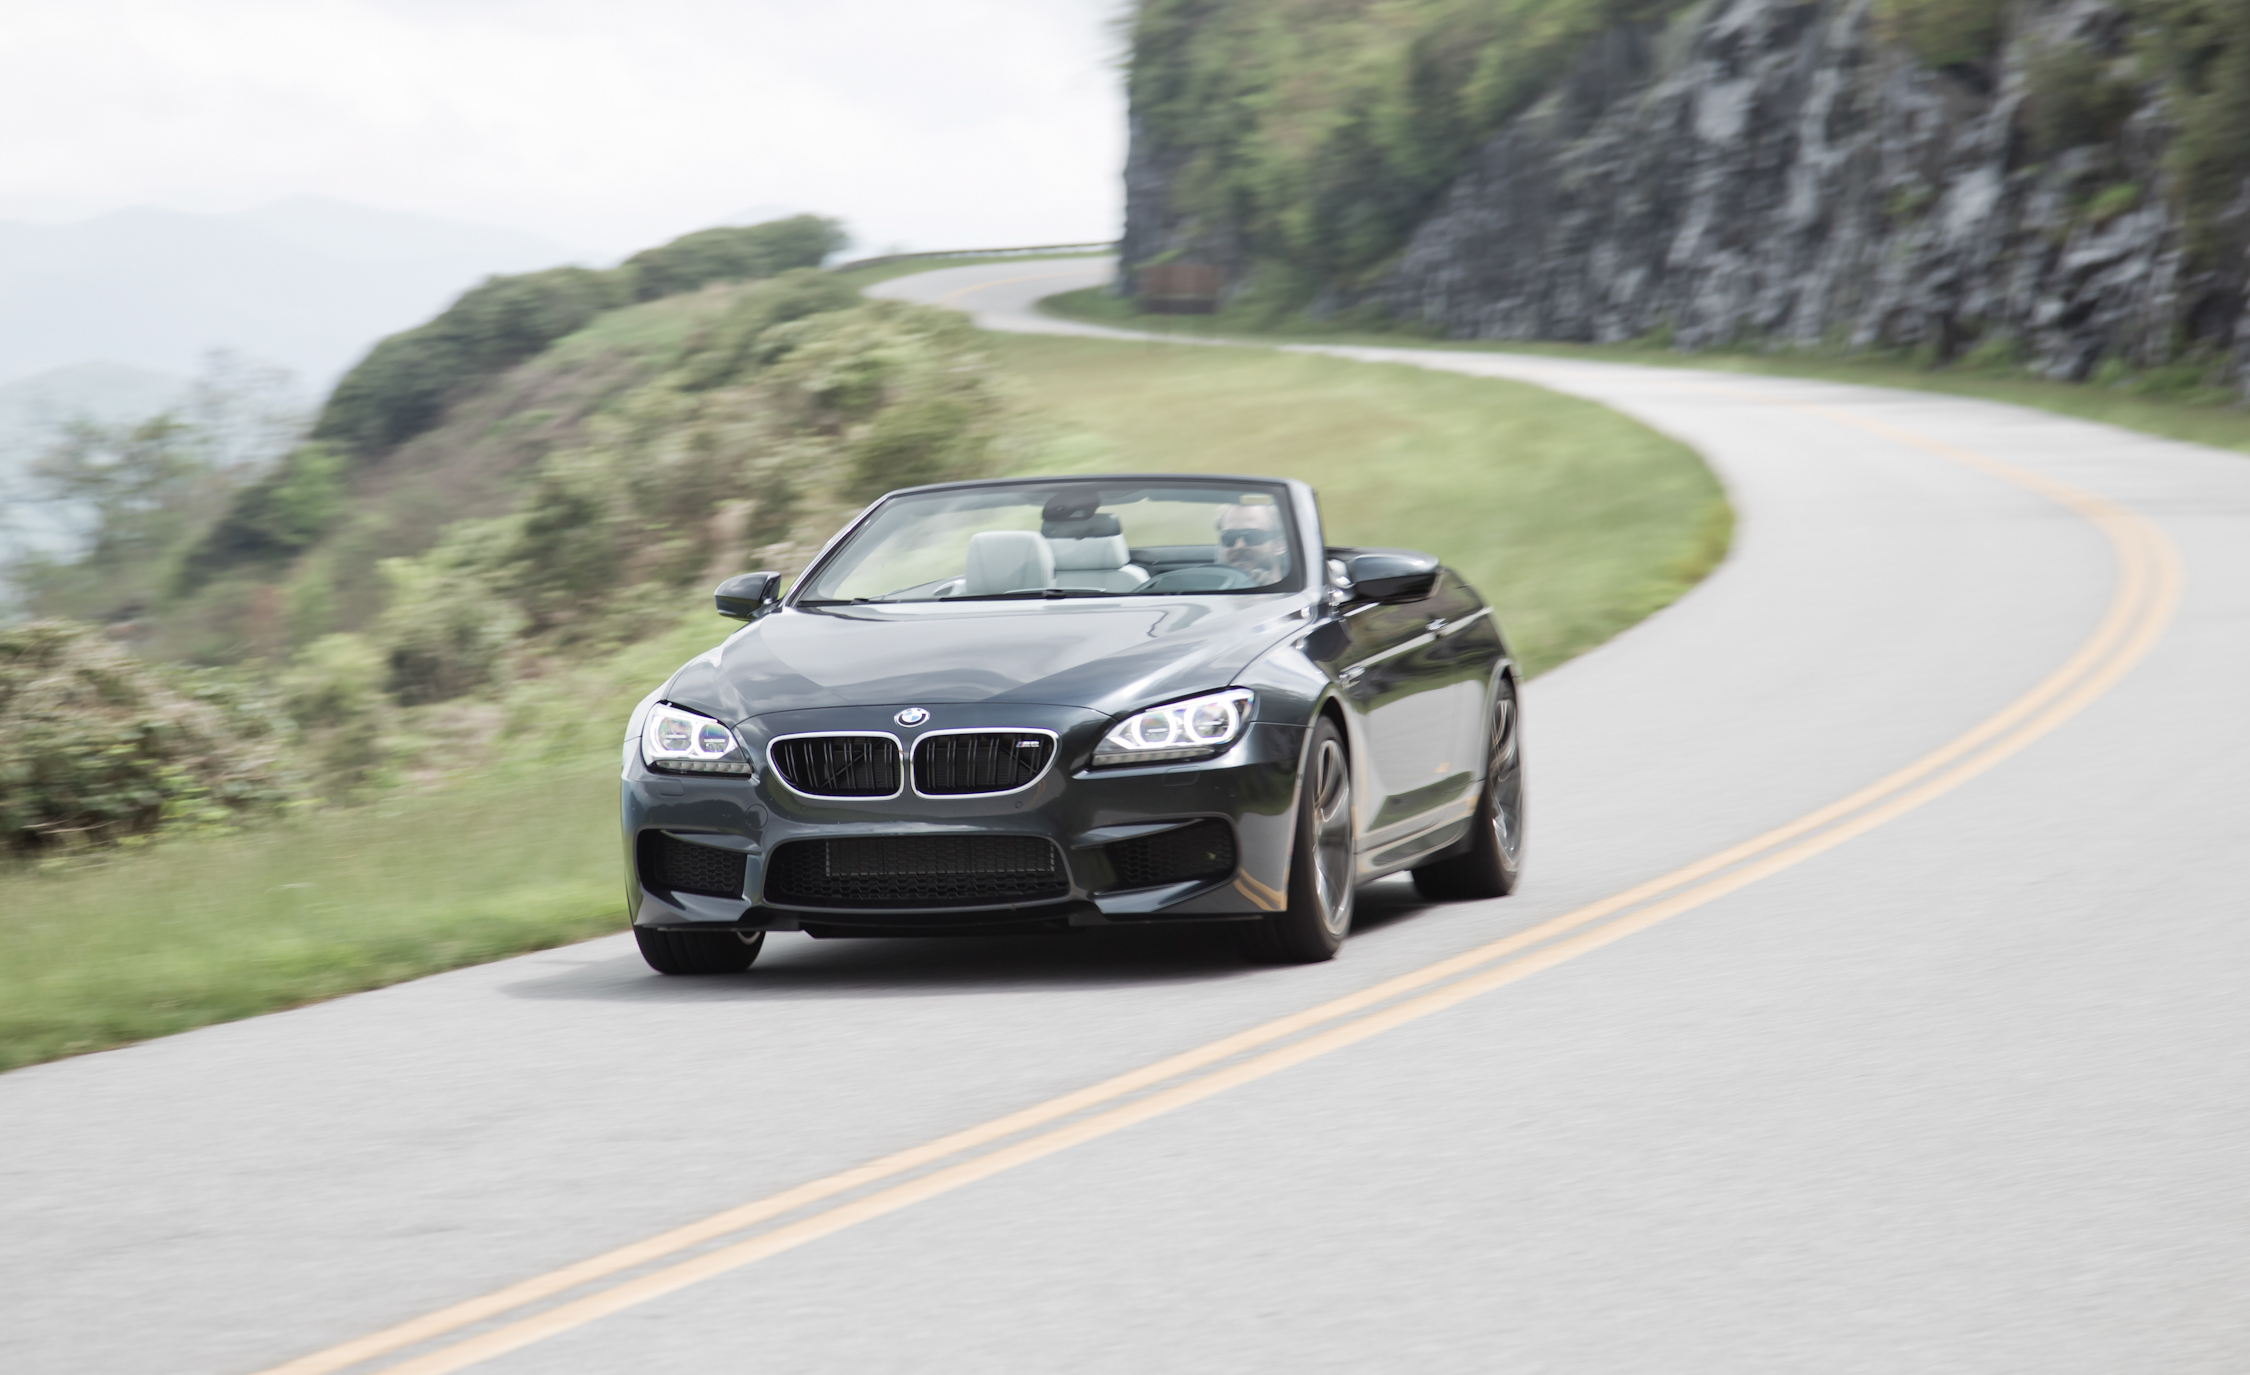 2012 BMW M6 Convertible Test (Photo 16 of 30)